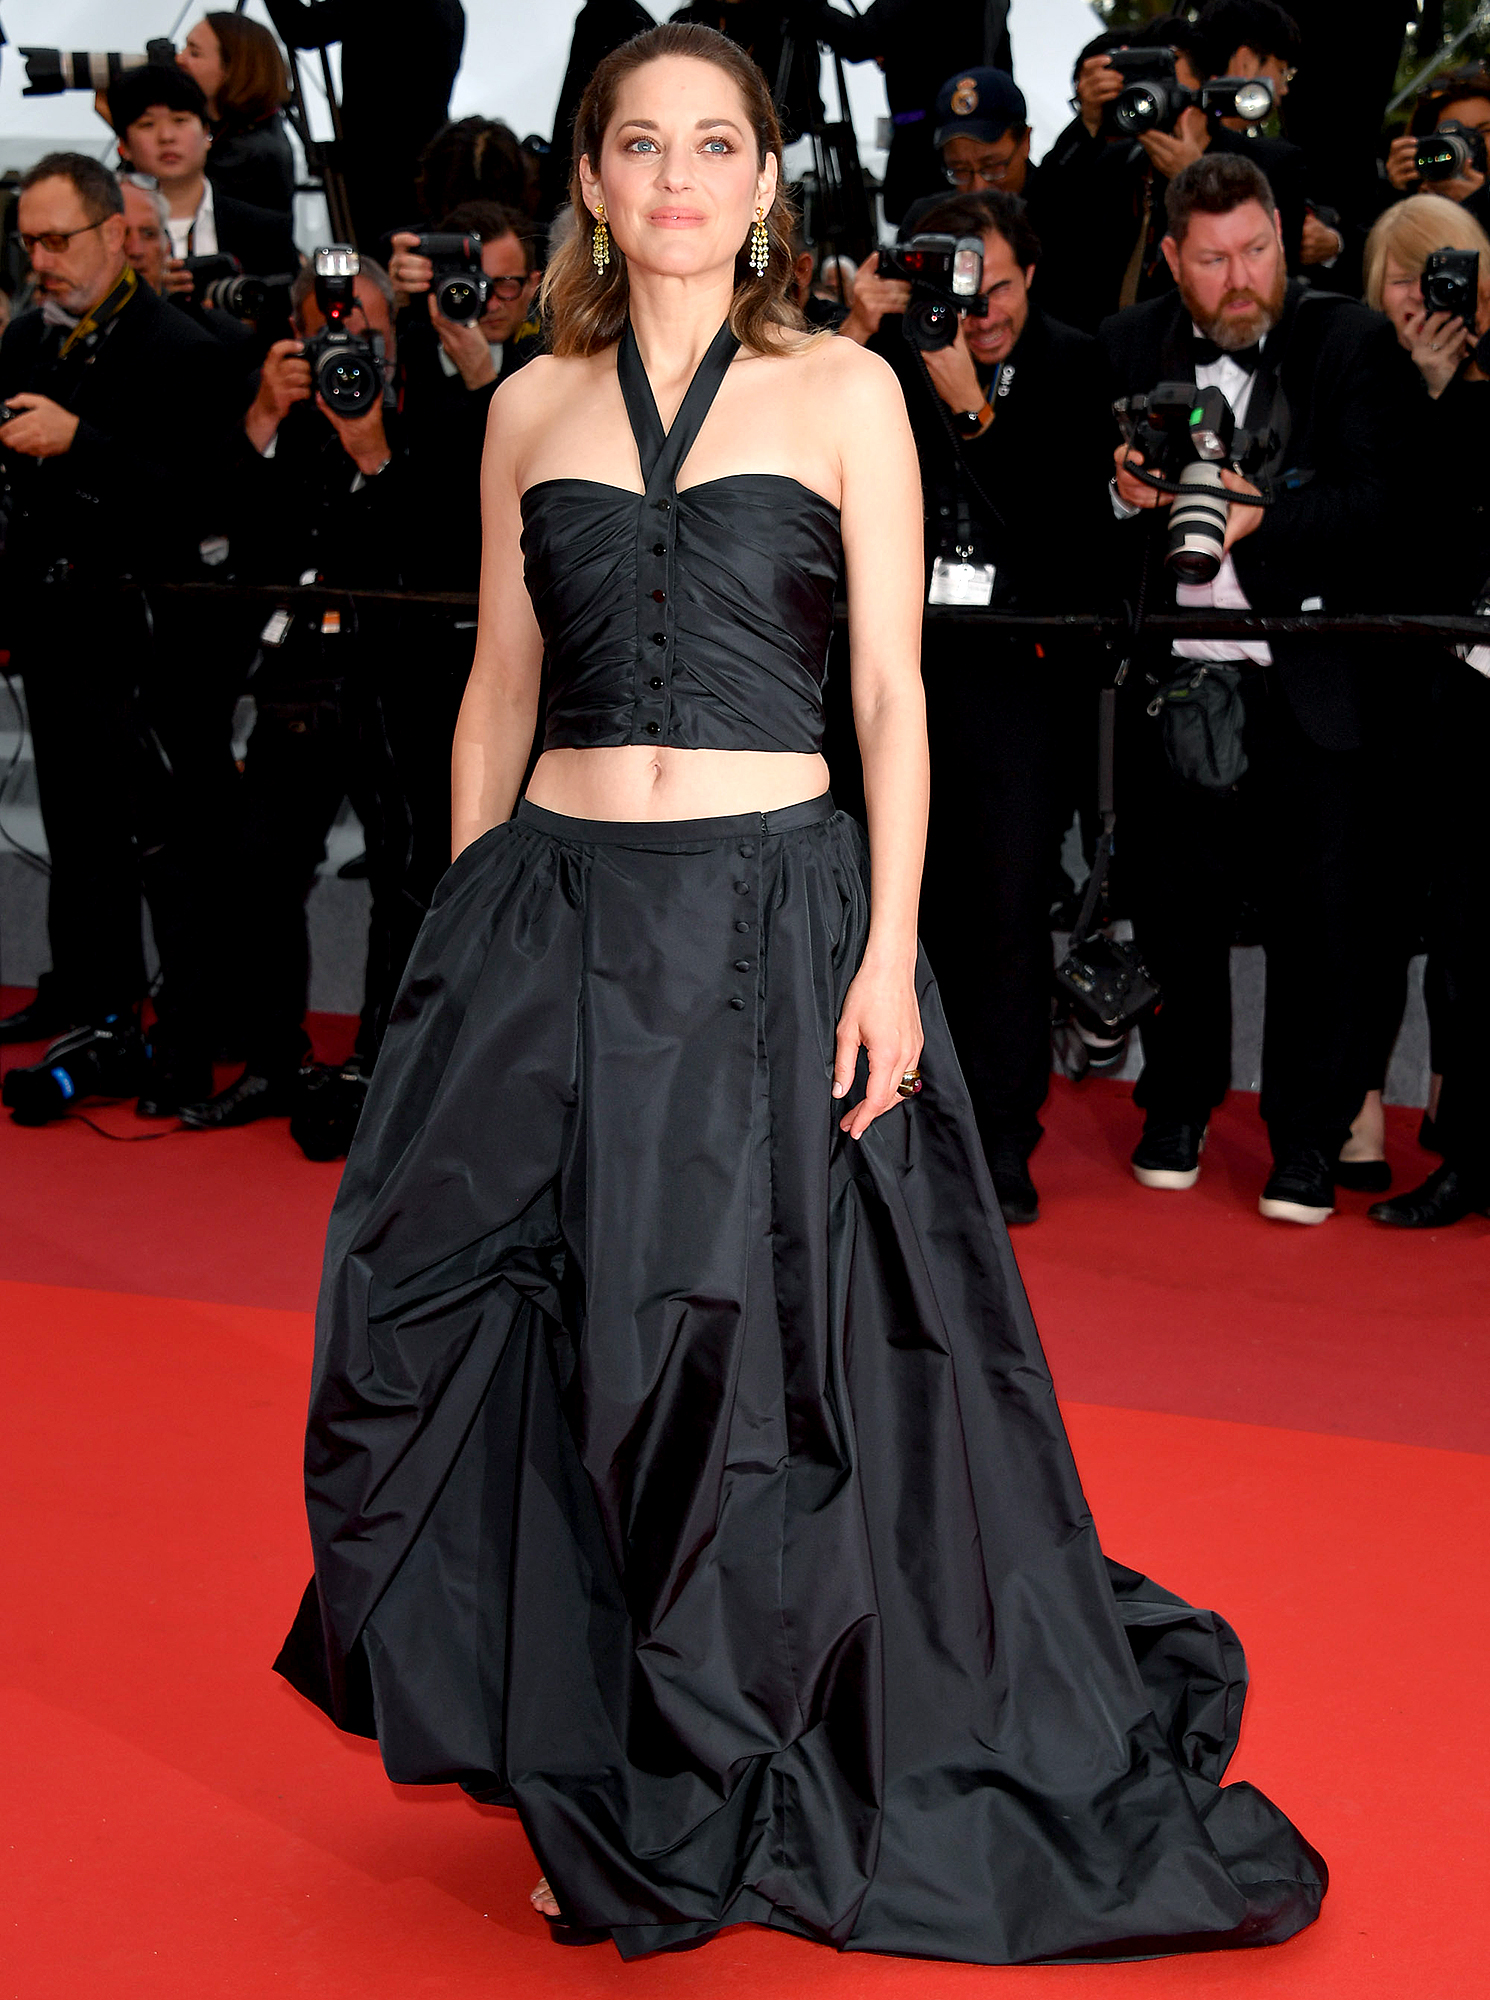 Marion-Cotillard - It was all about the vintage vibes for the actress at the Le Belle Epoque screening on Monday, May 20. She flashed her abs in an archival Chanel two-piece.